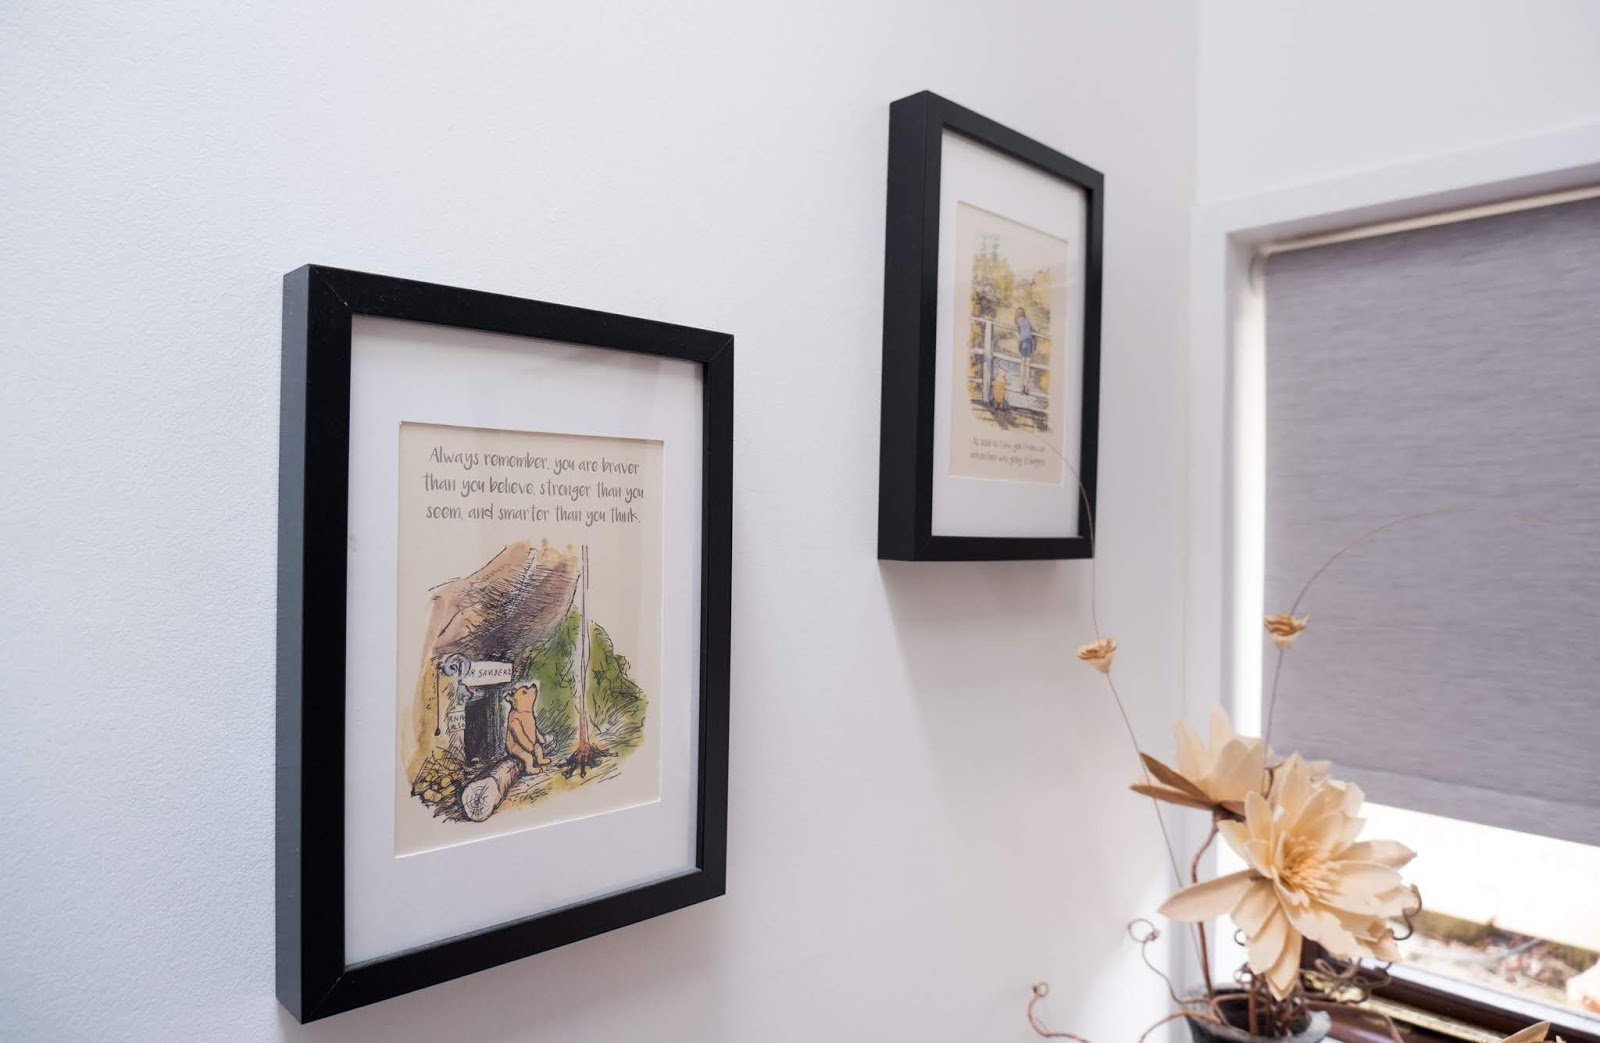 Winnie the Pooh artwork at the Hundred Acre Wood studio